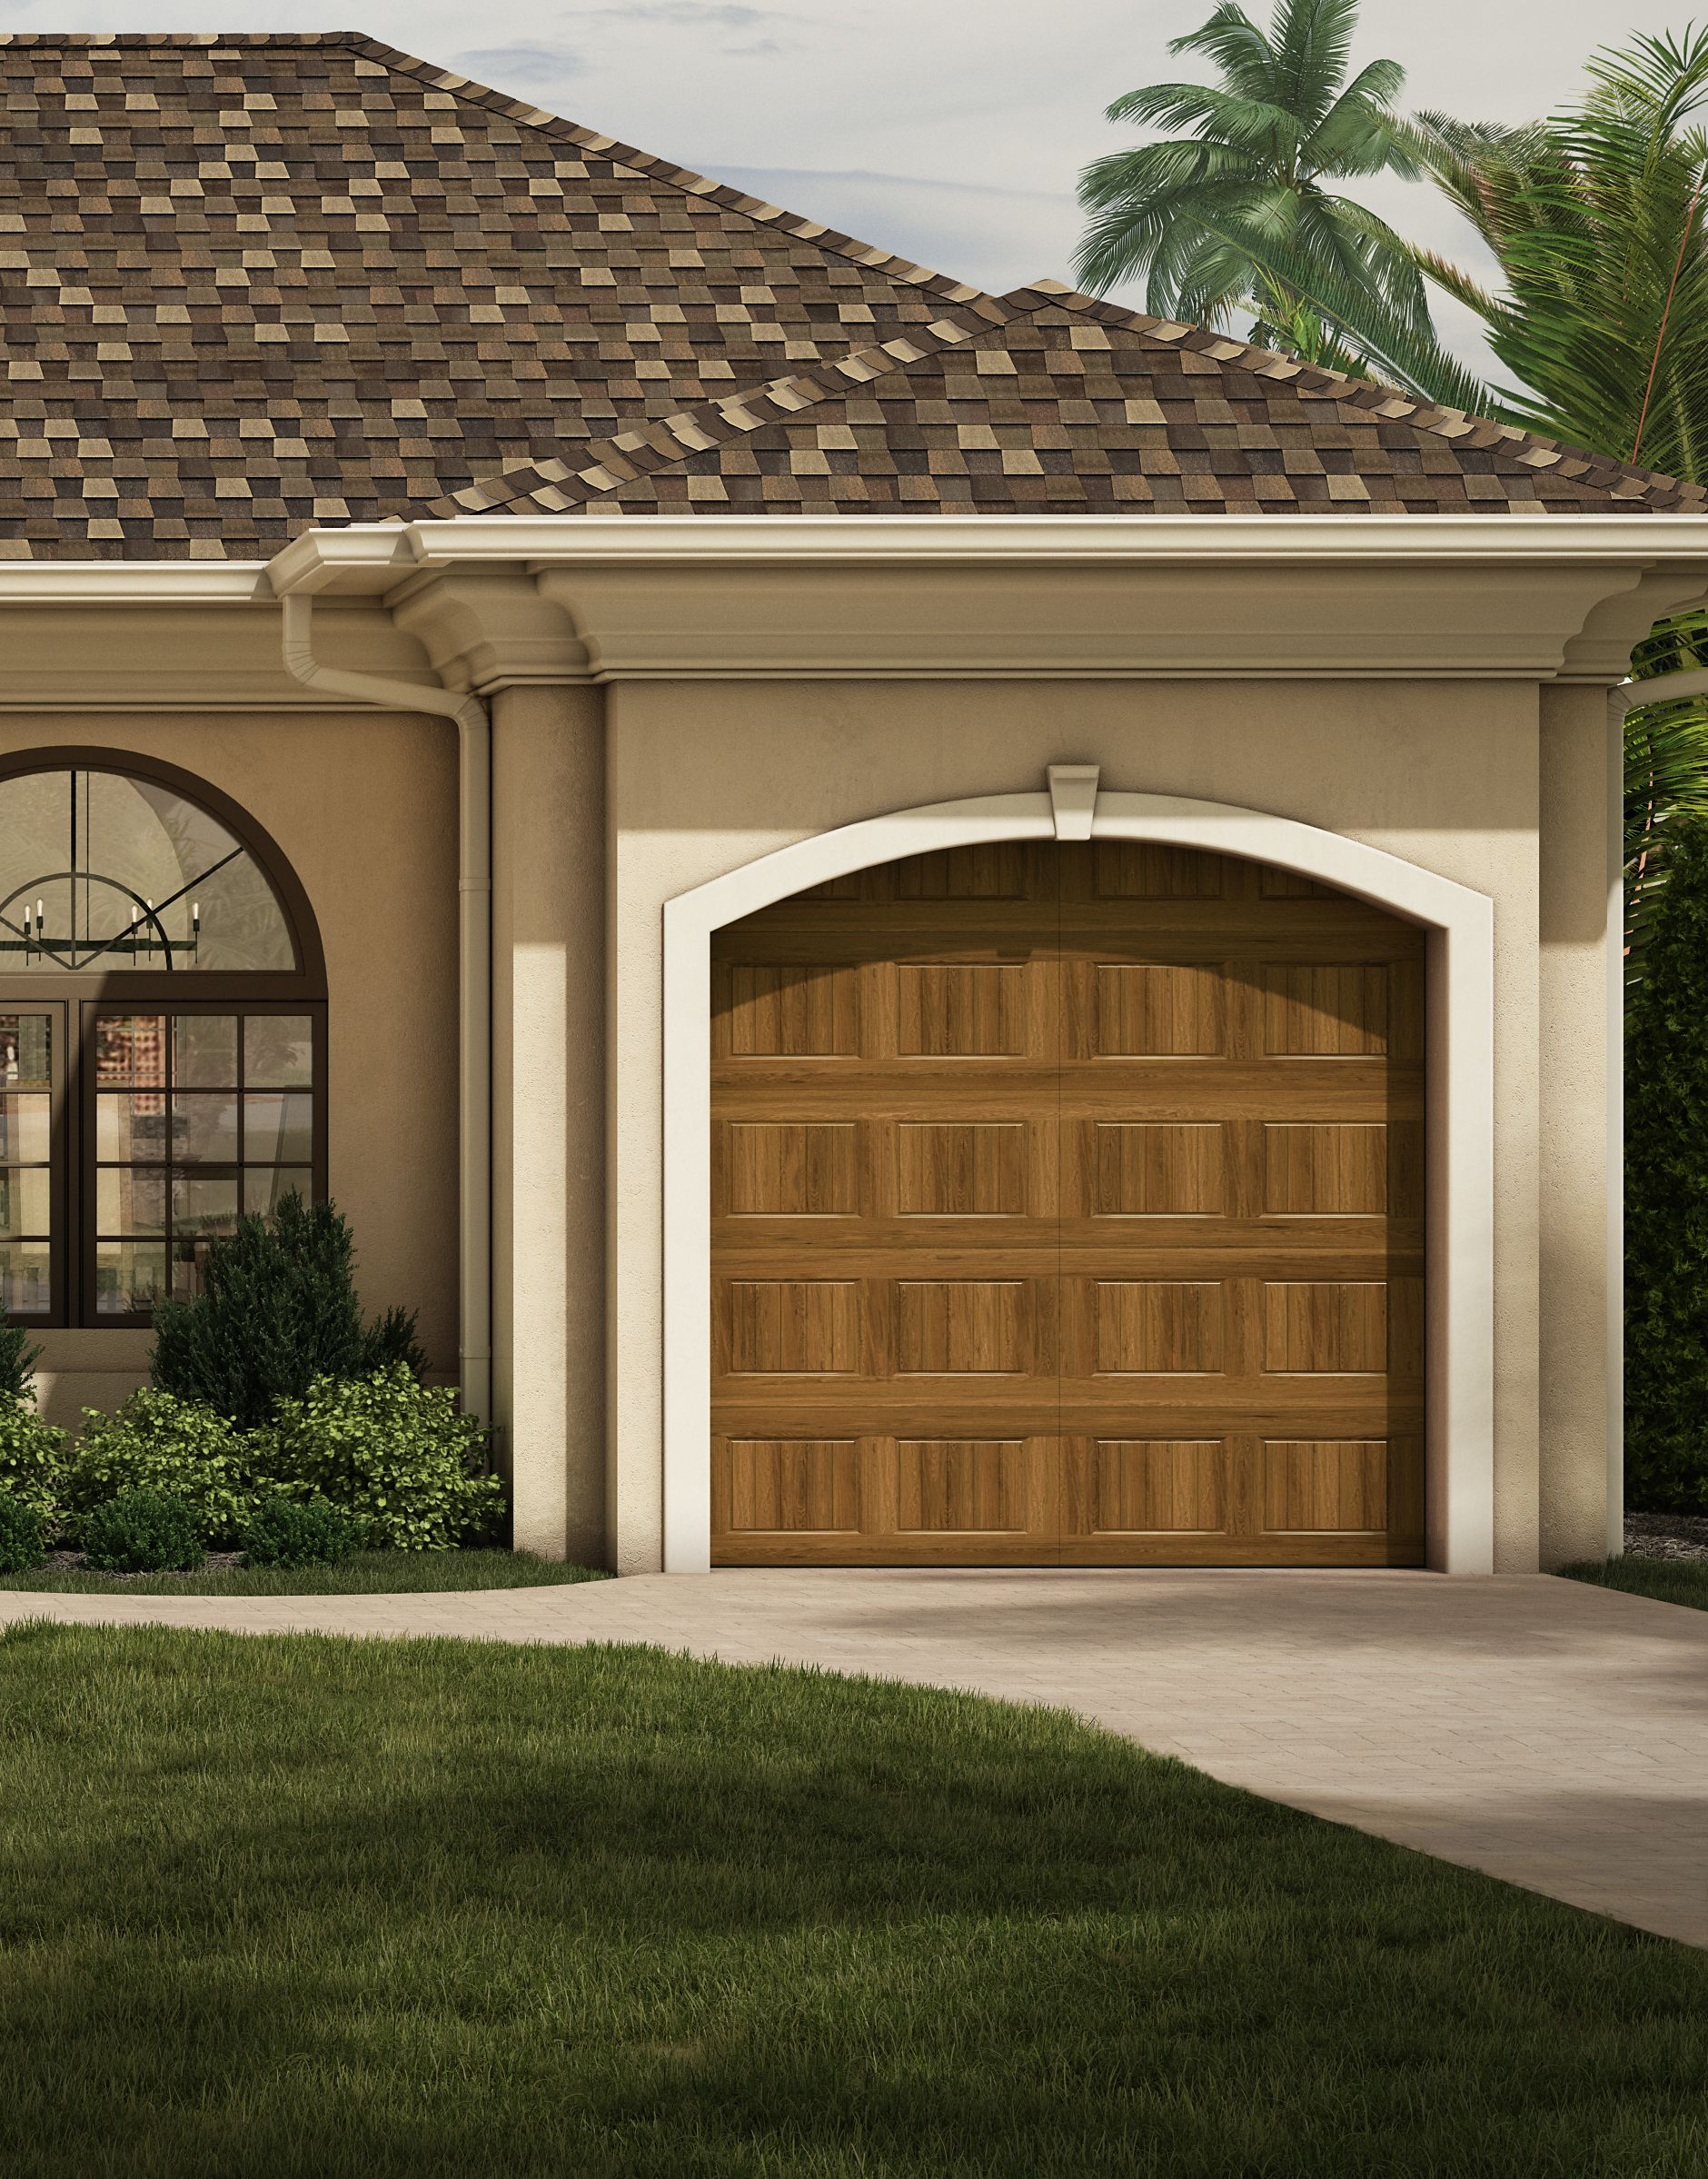 Carriage Garage Doors In 2020 Garage Door Styles Garage Doors Affordable Garage Doors